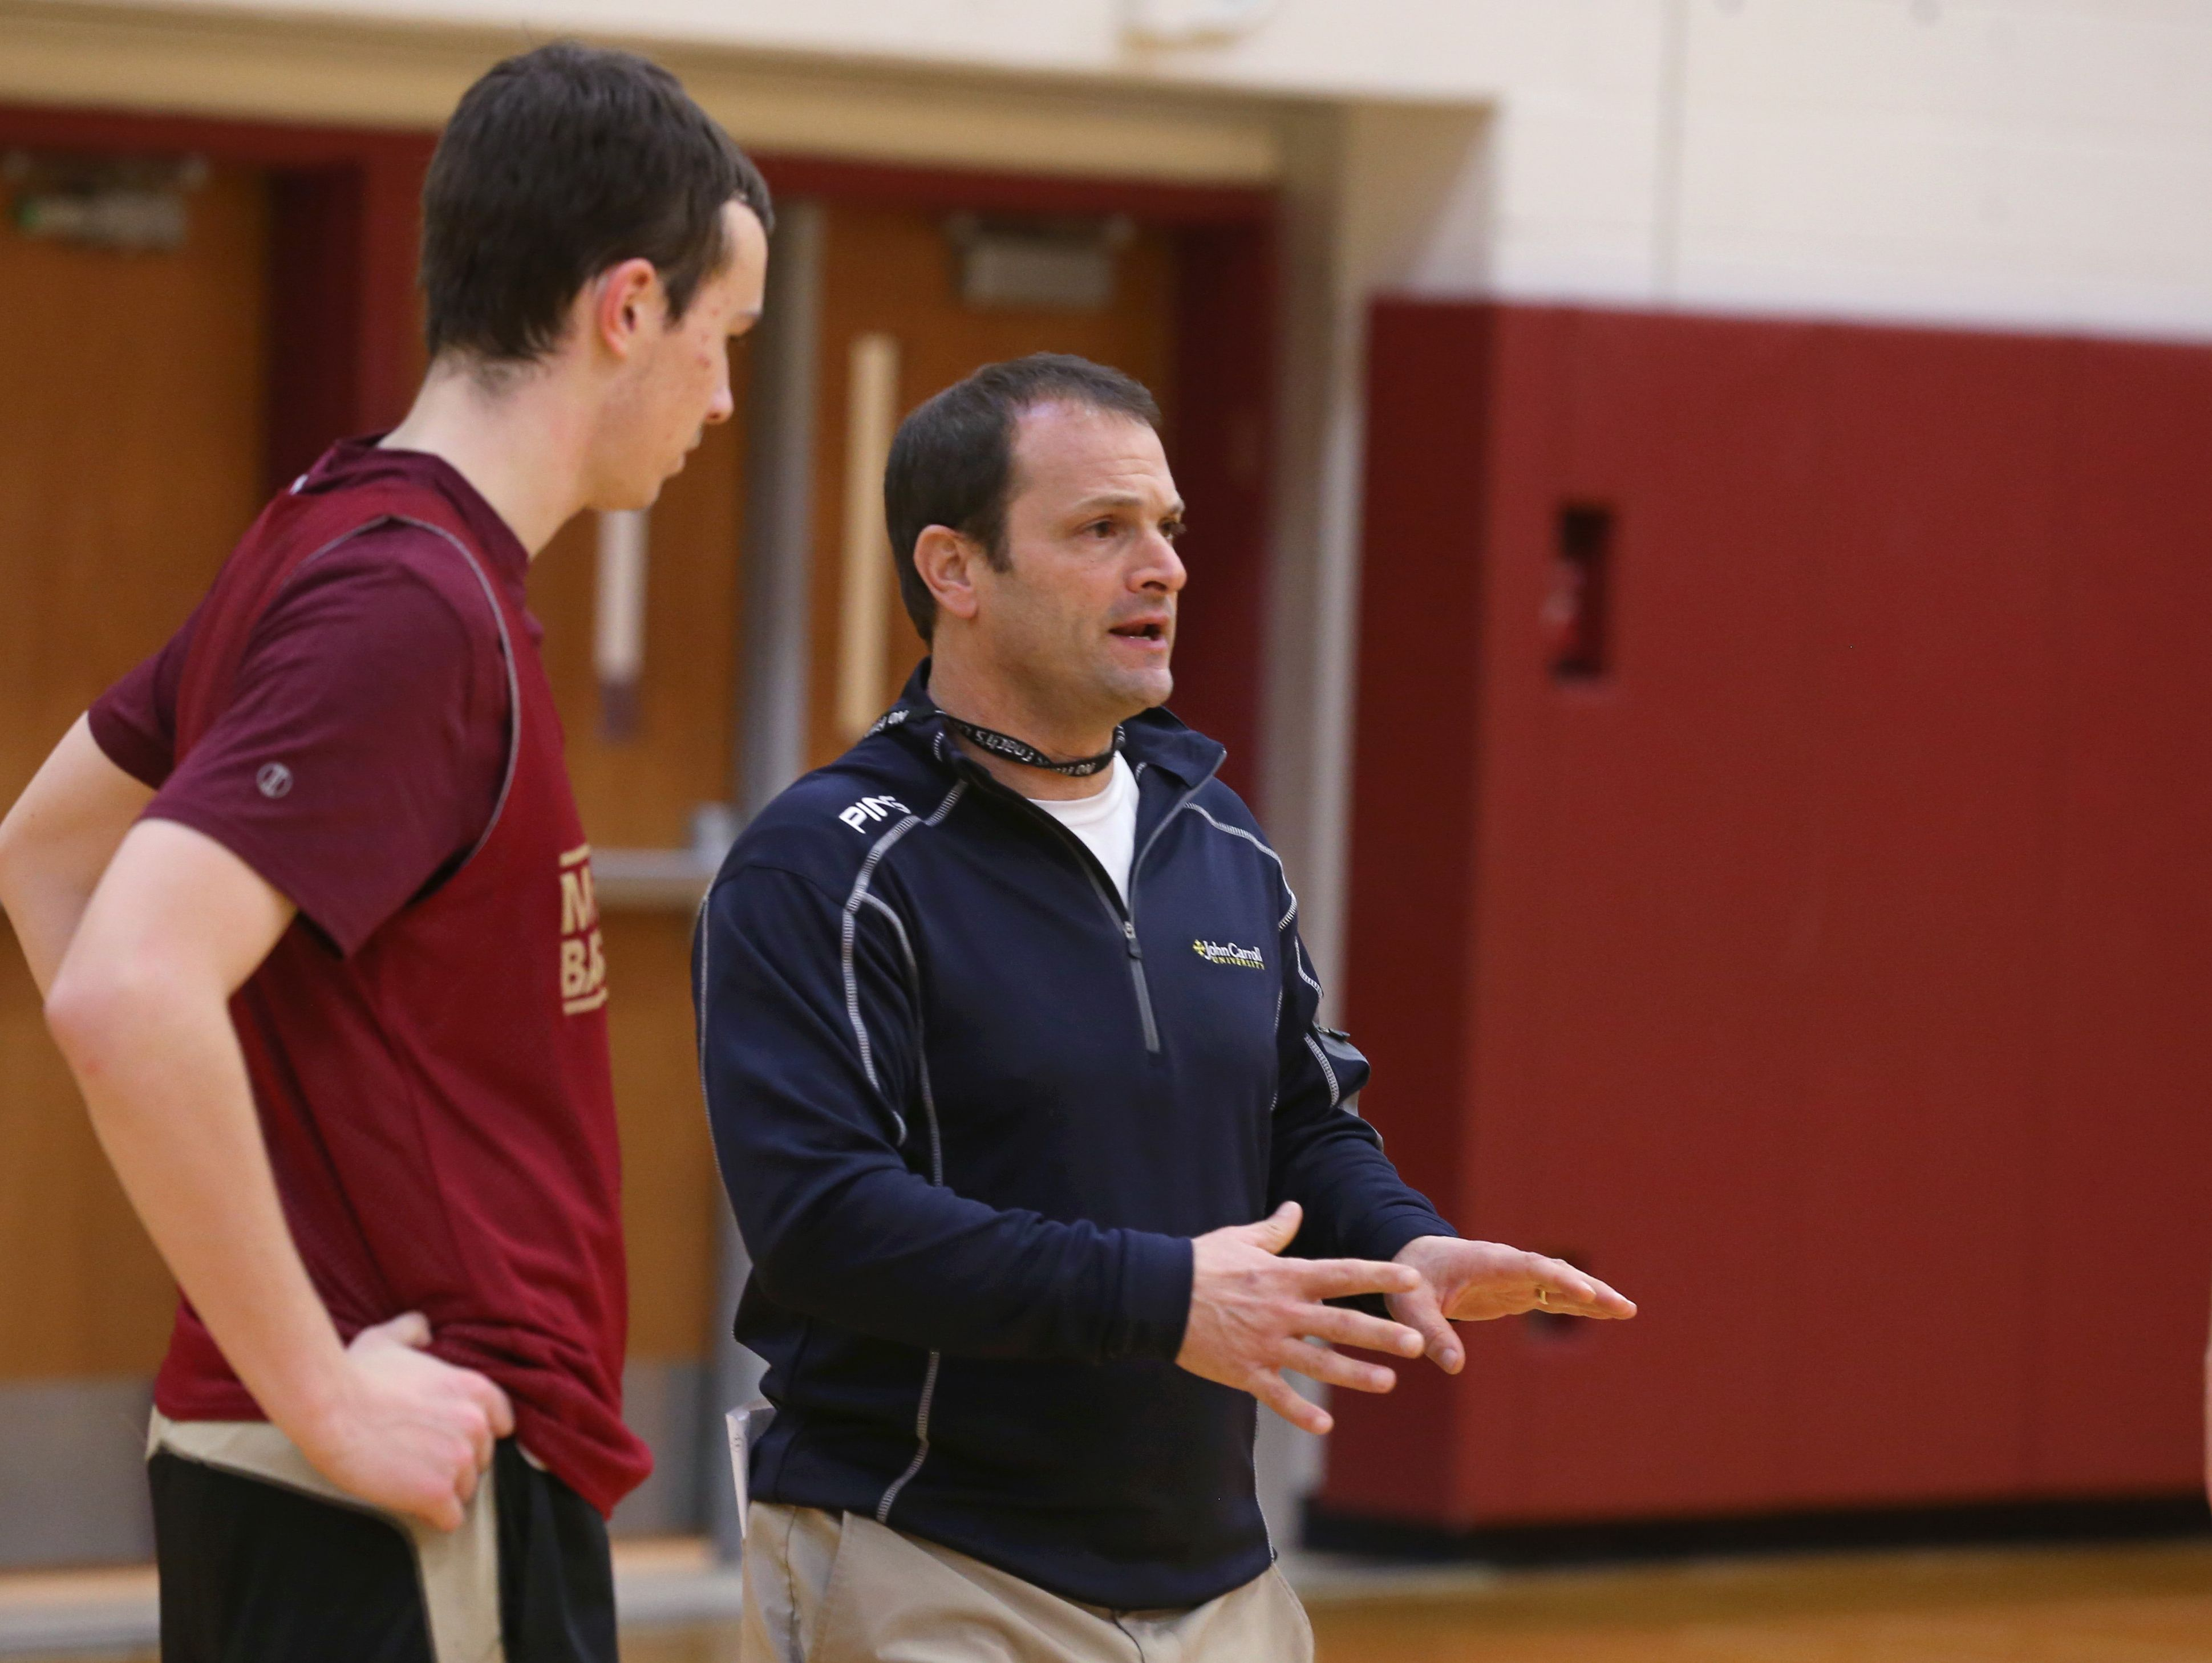 Jeff Amoroso, Pittsford Mendon boys varsity basketball assistant coach, works with the players during practice Tuesday at the high school.